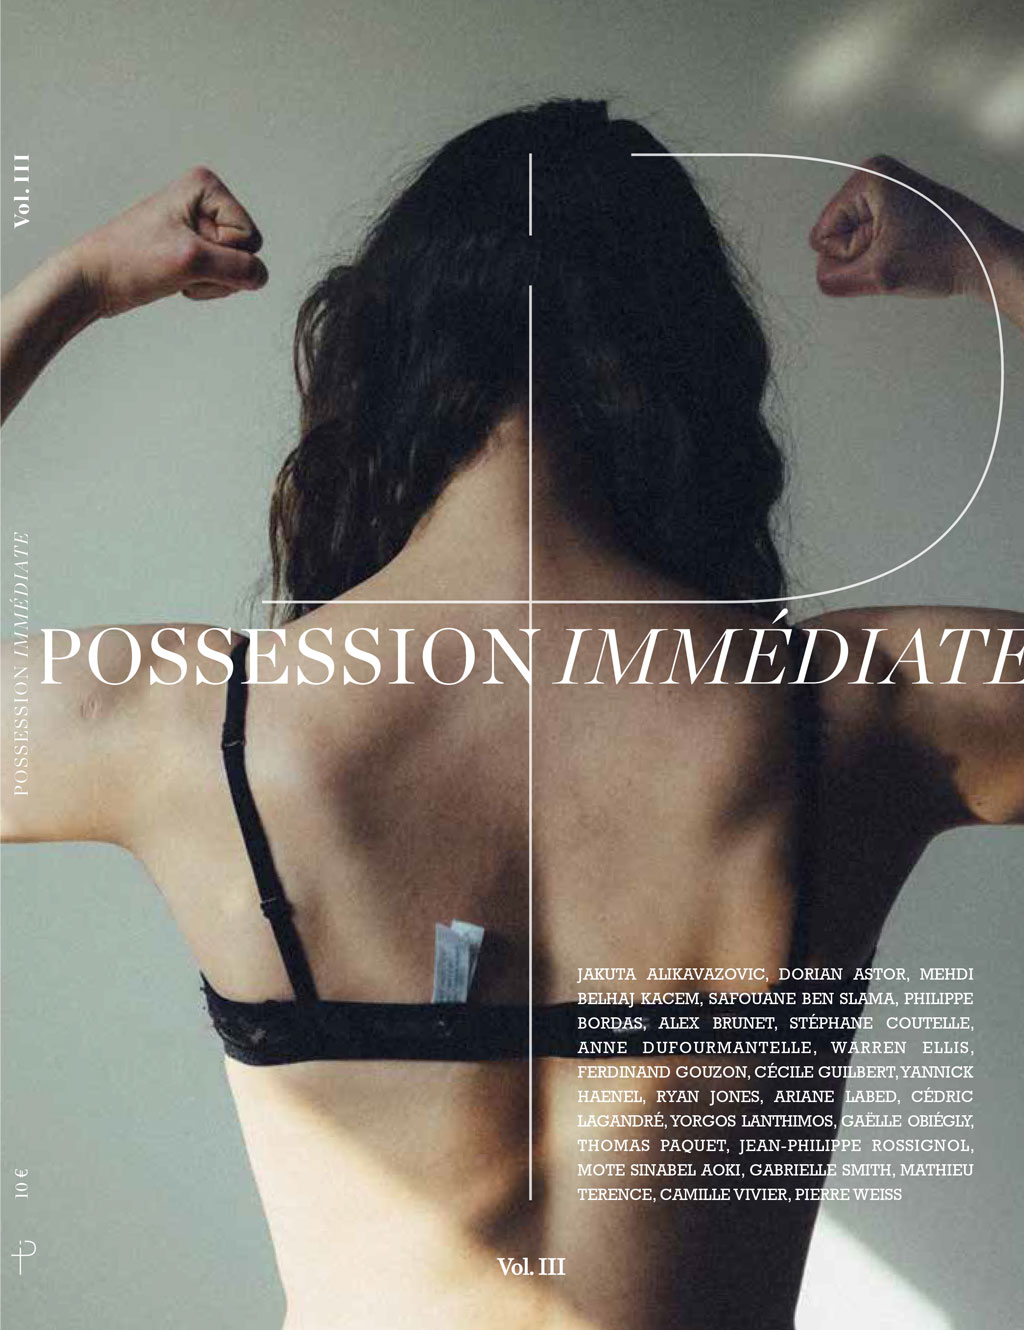 Possession Immédiate, volume 3. Couverture : Ariane Labed par Yorgos Lanthimos